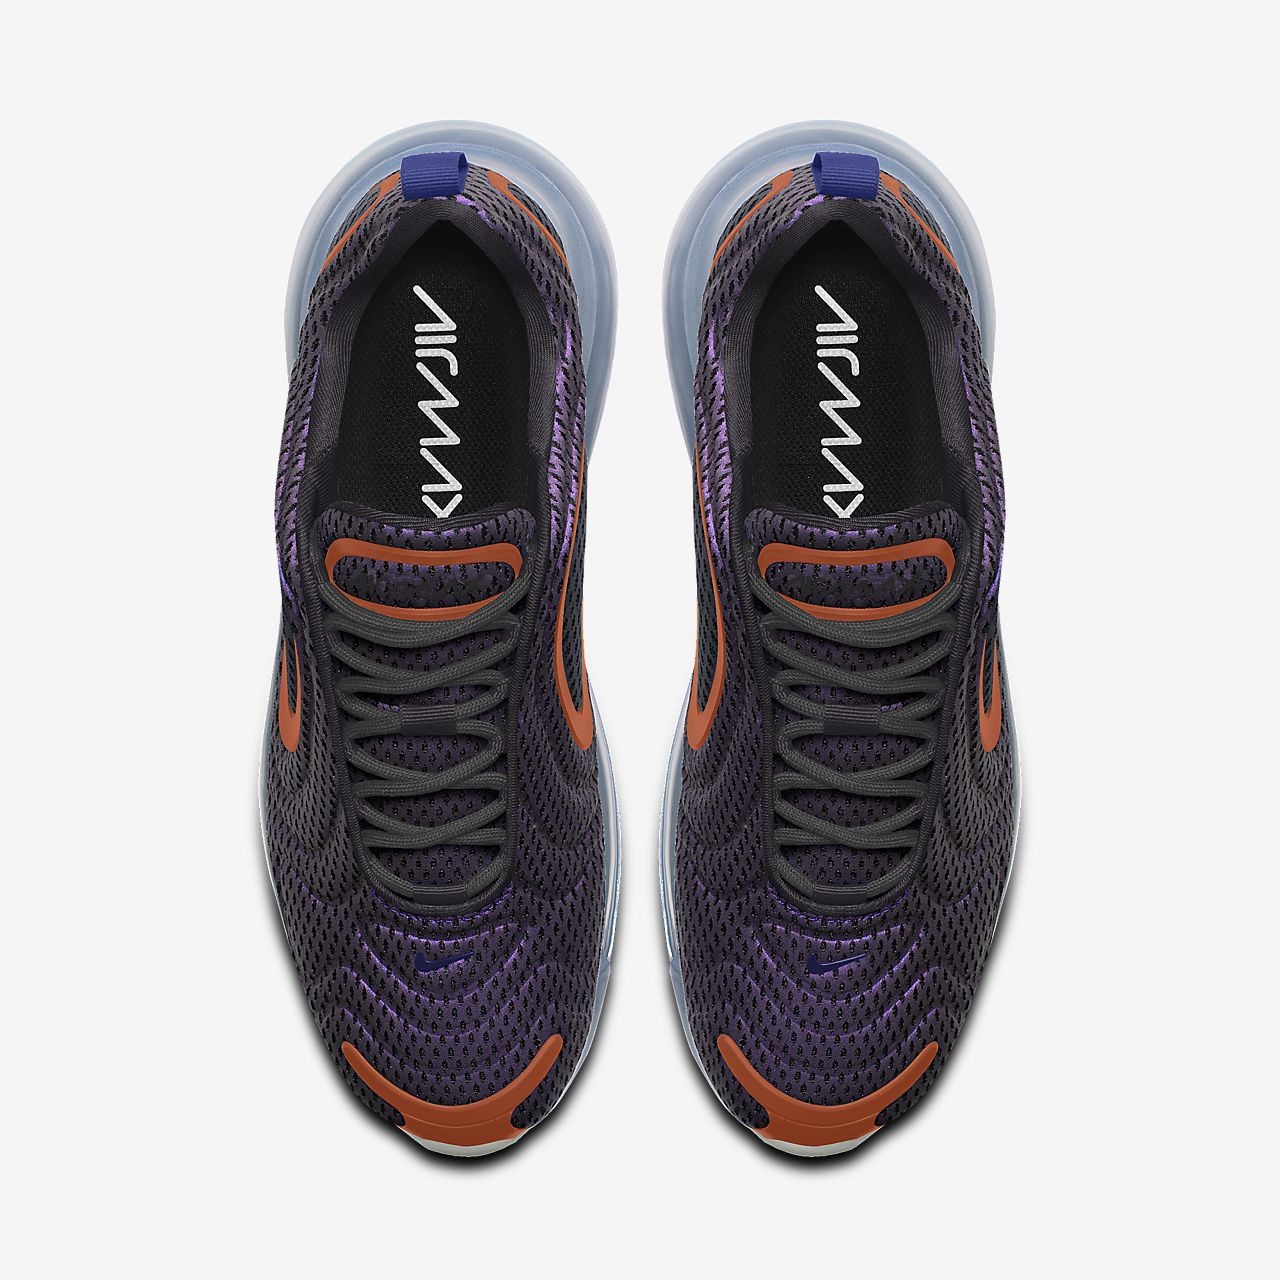 Chaussure lifestyle personnalisable Nike Air Max 72095 Heron Preston By You